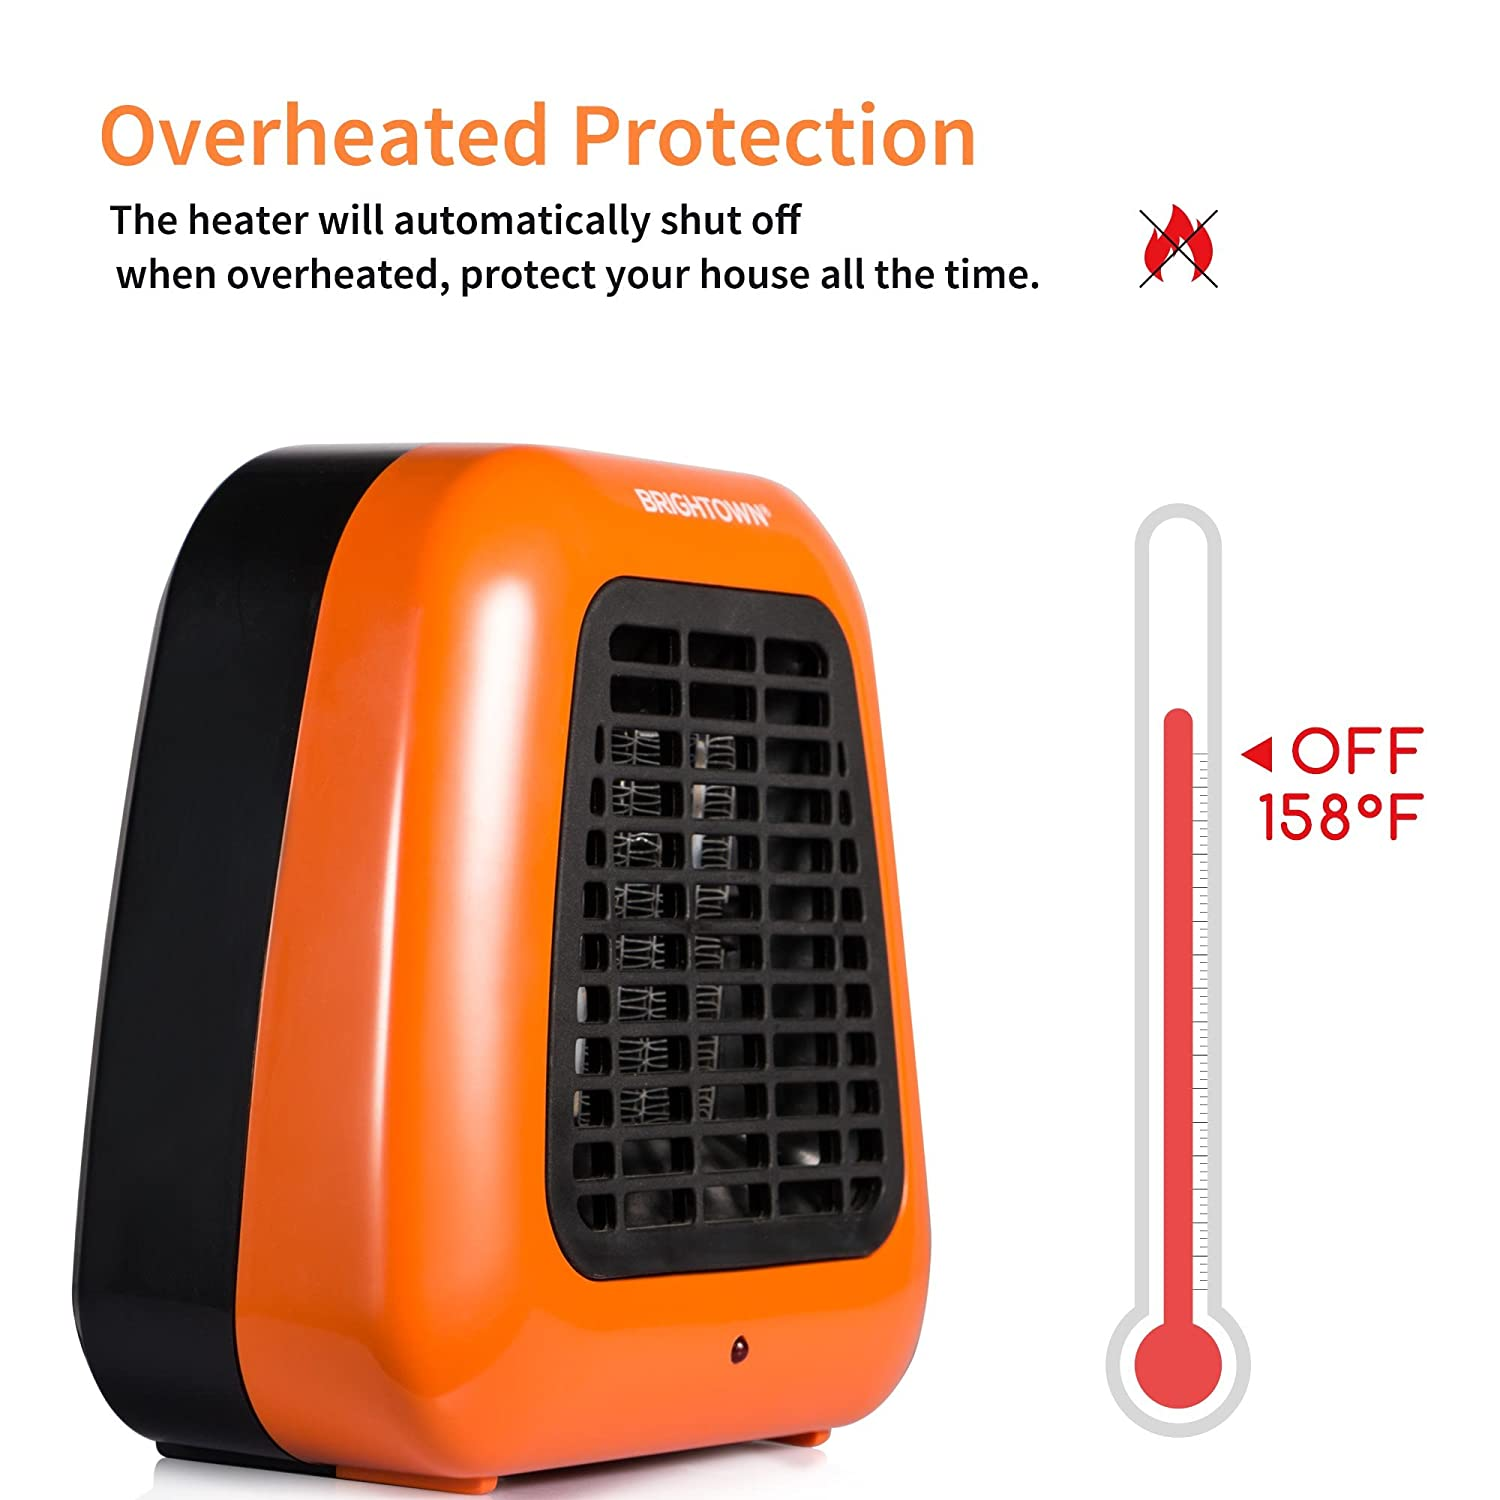 400W Energy Efficient Small Electric Space Heater Portable Ceramic Mini Heater with Overheat Protection for Office Desktop Indoor Use